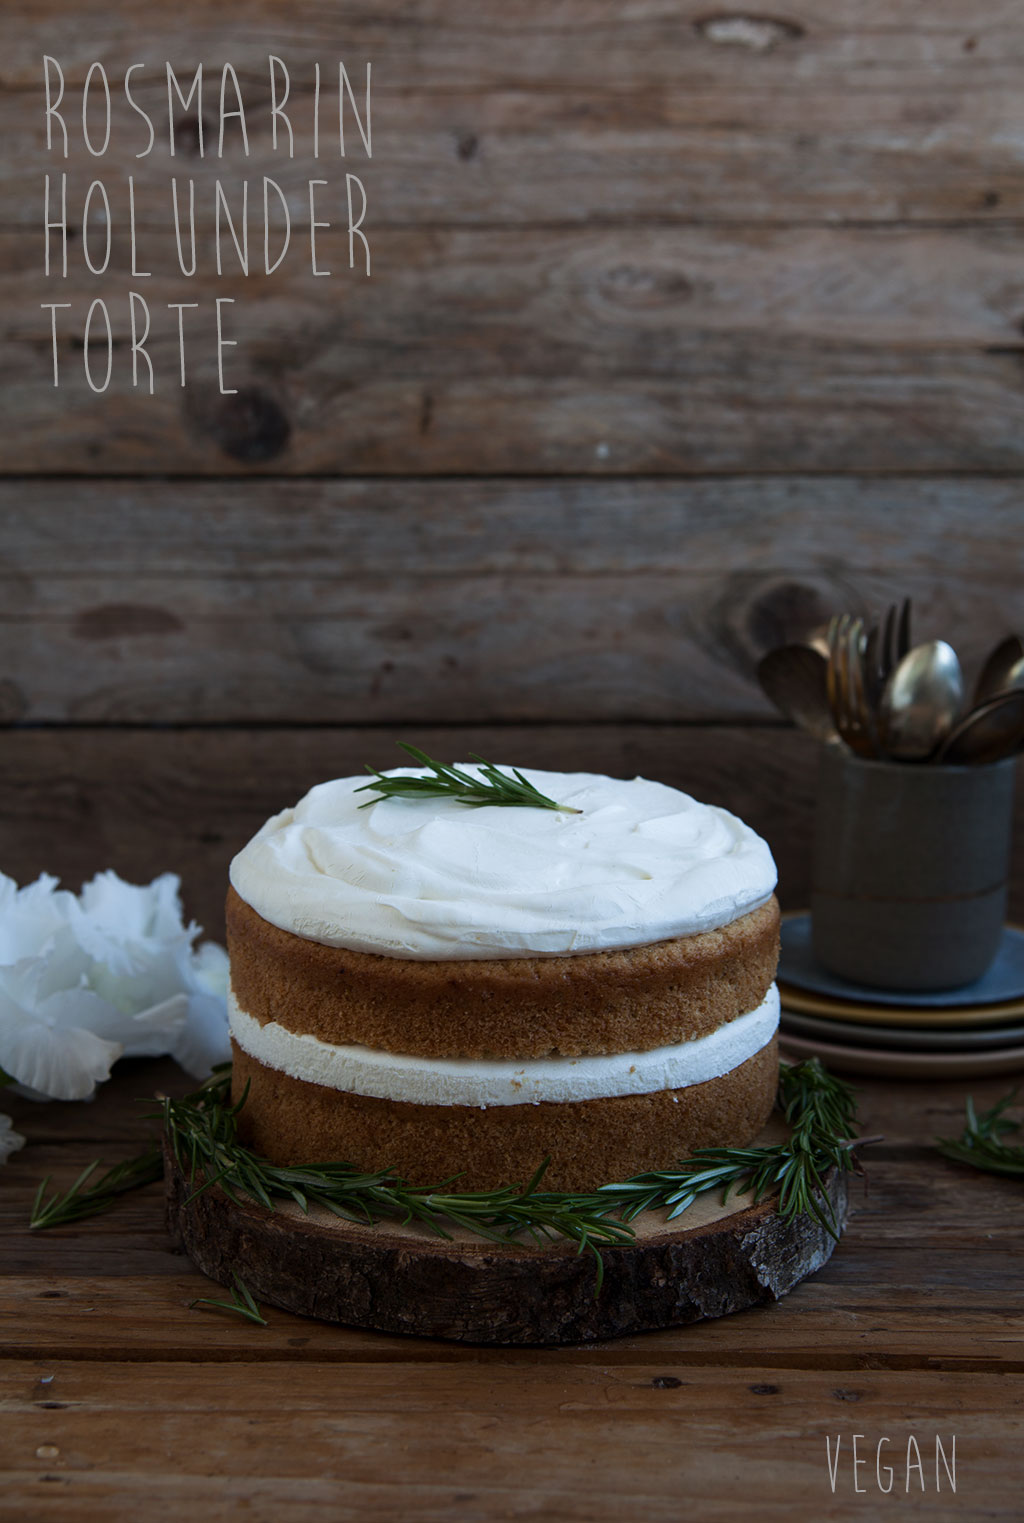 Rosmarin Torte vegan mom